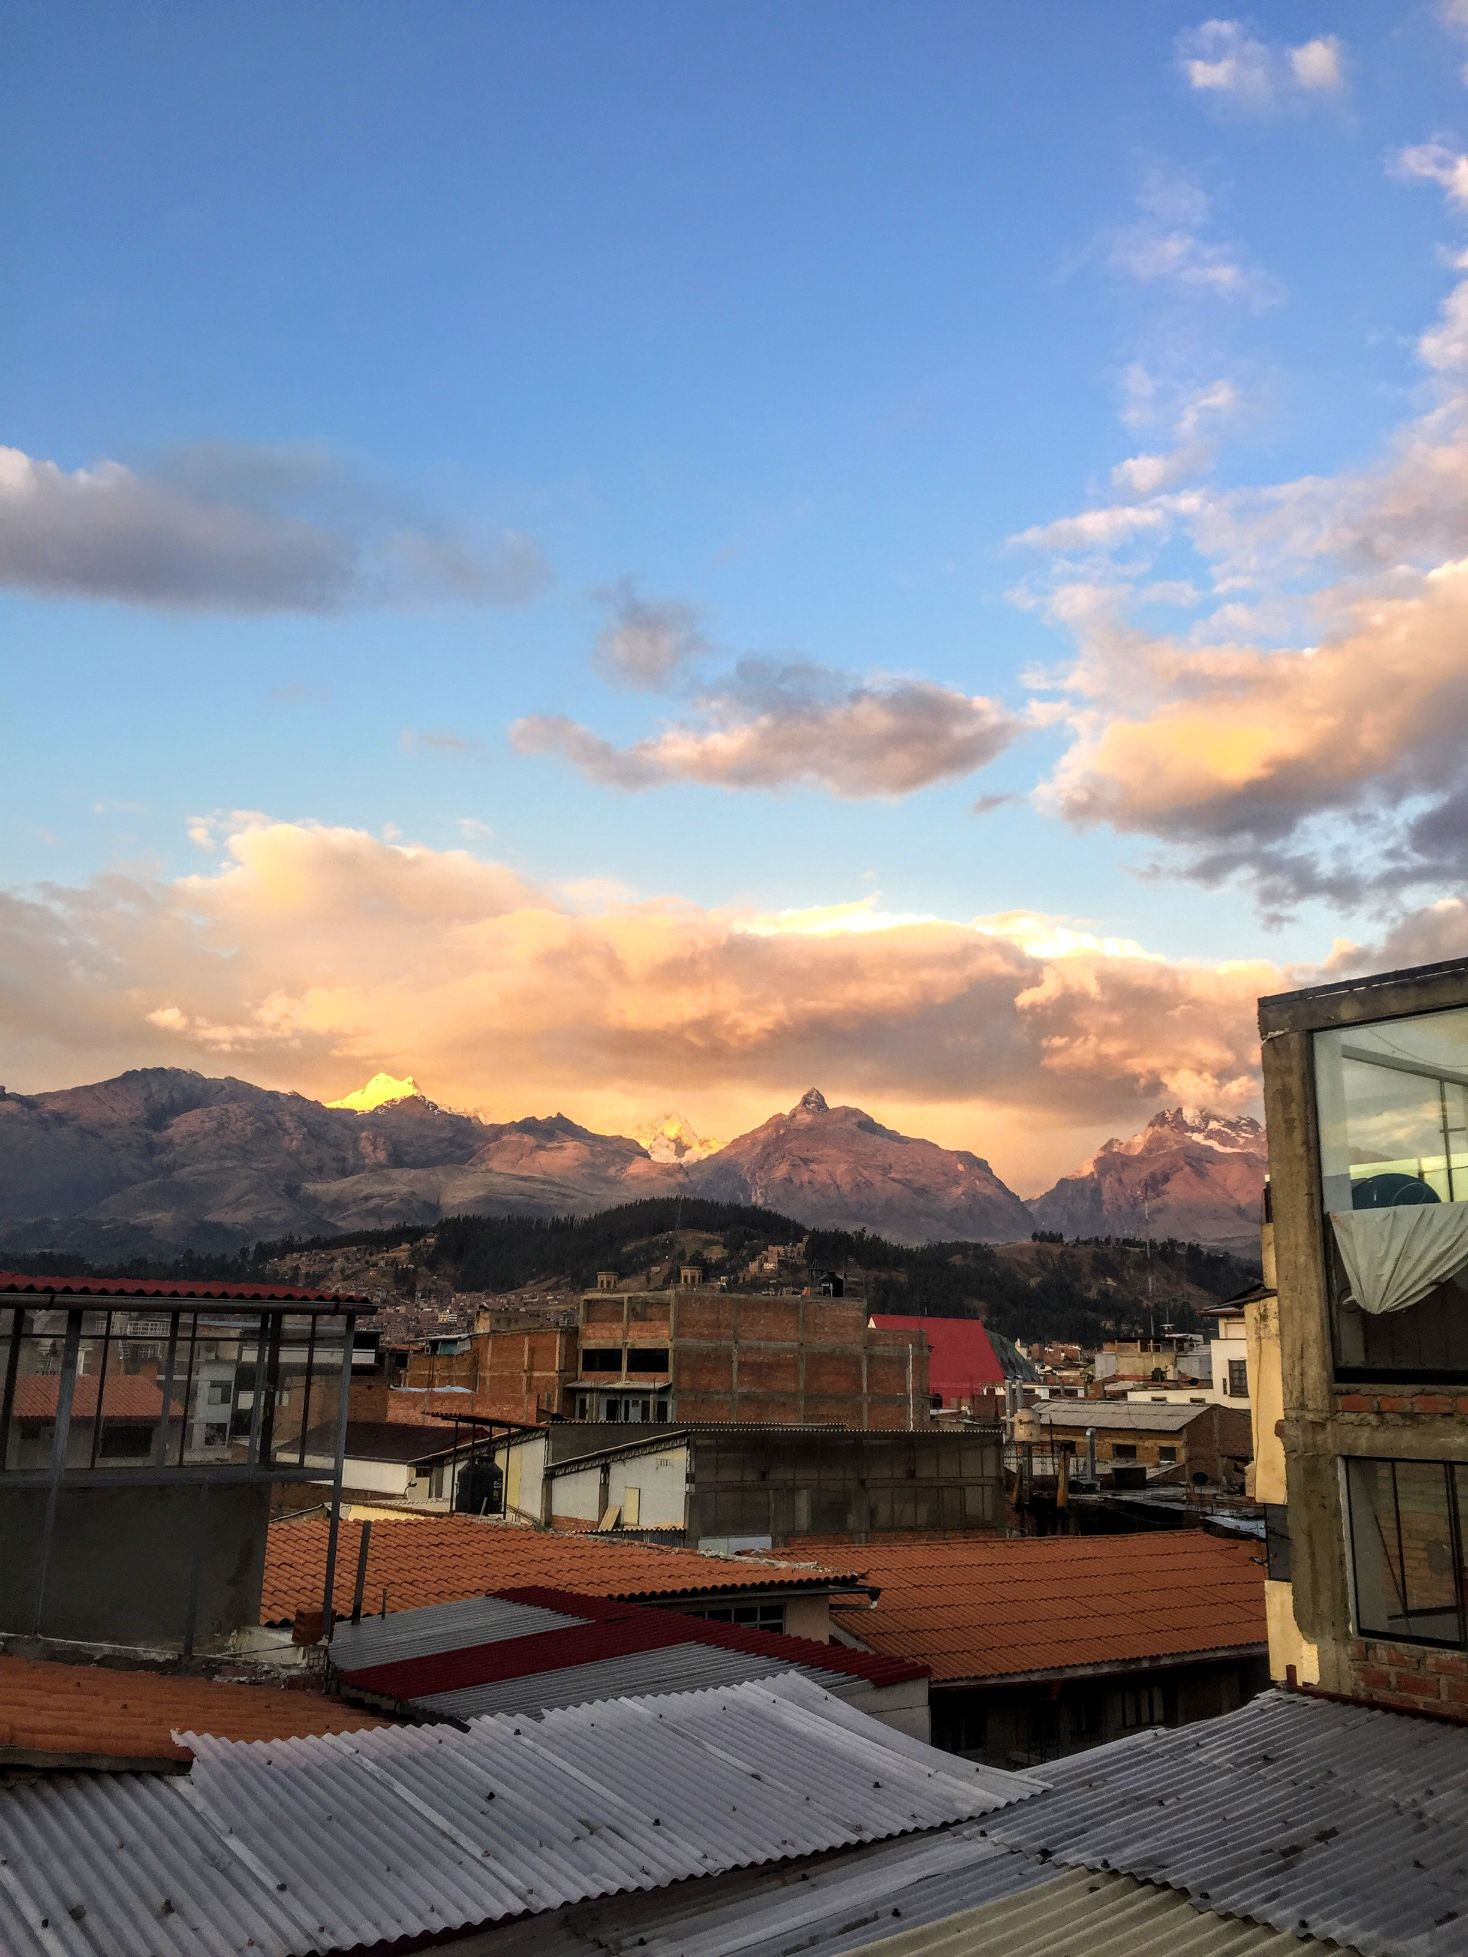 view of mountains at sunset over the town of Huaraz, Peru